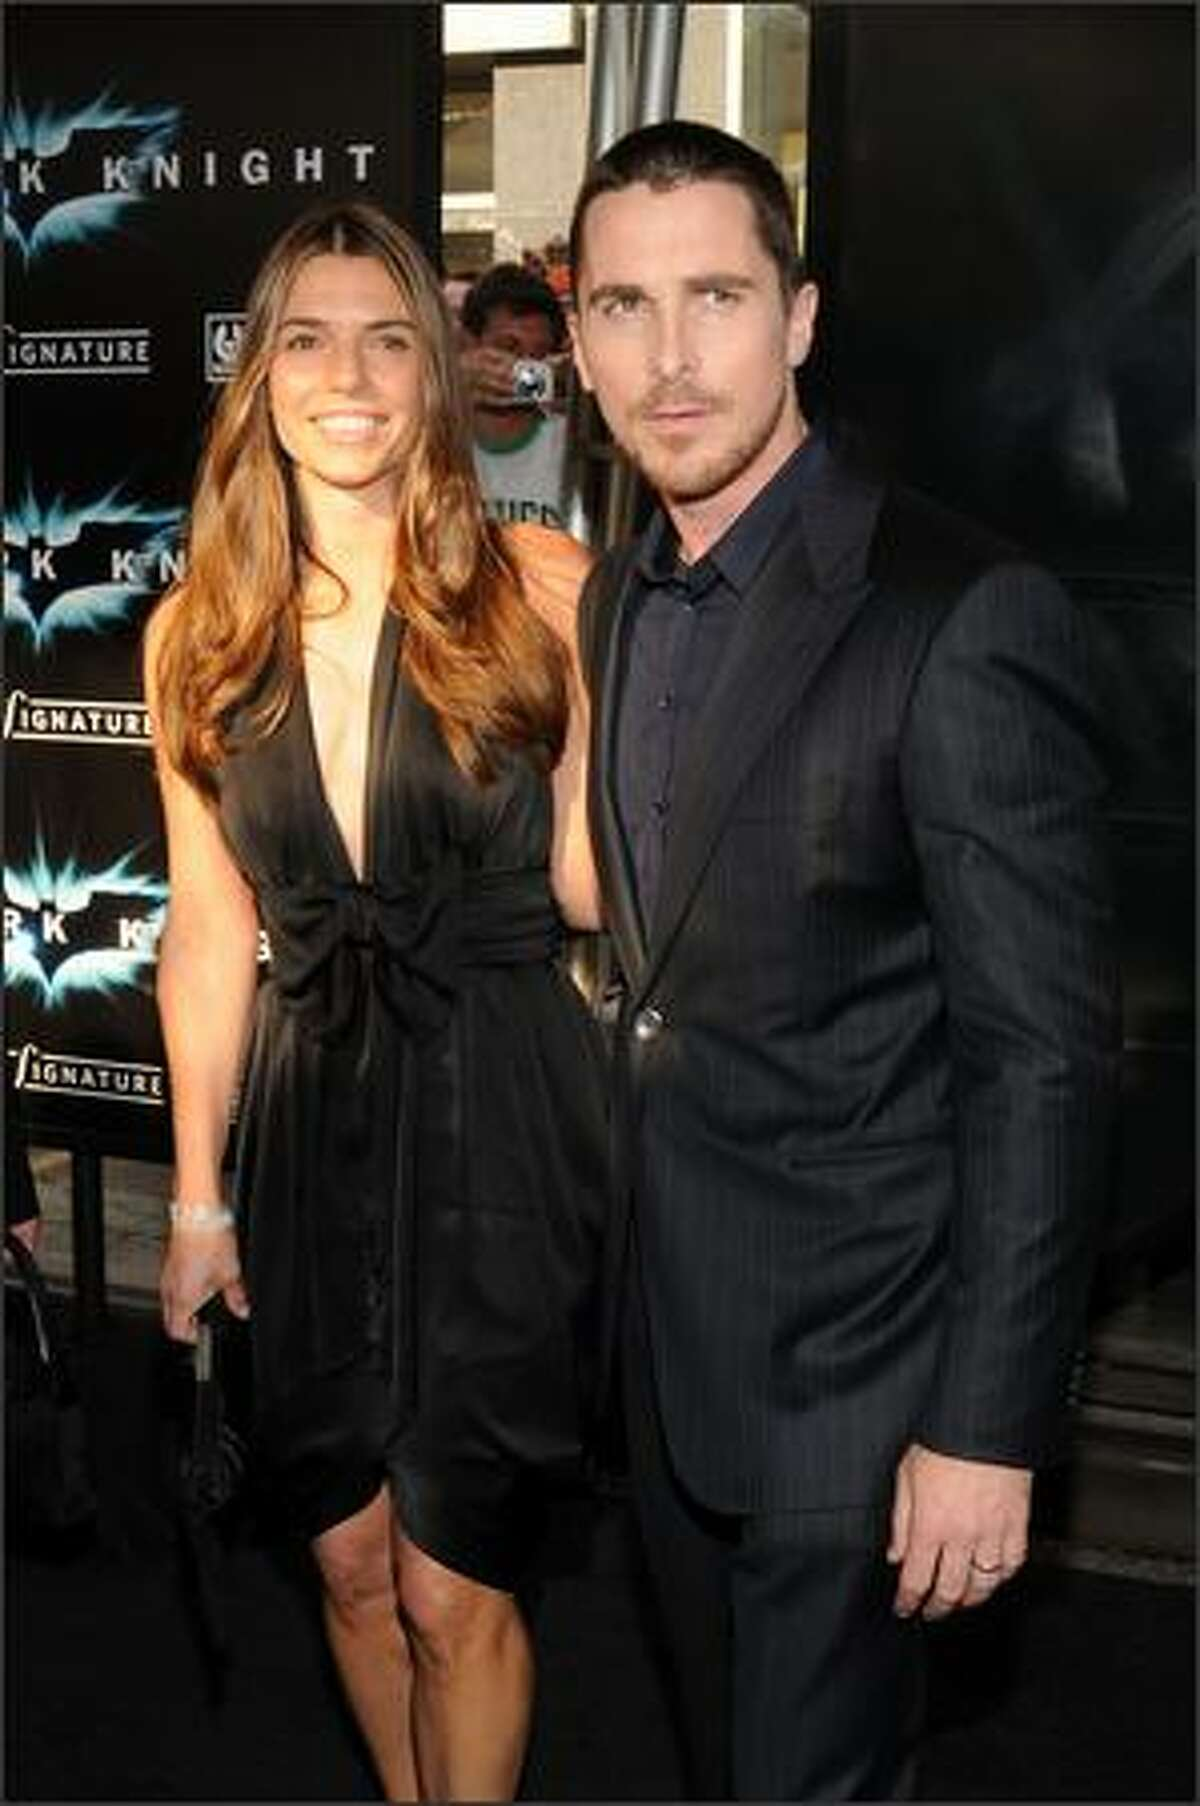 Actor Christian Bale and guest arrive at the world premiere of